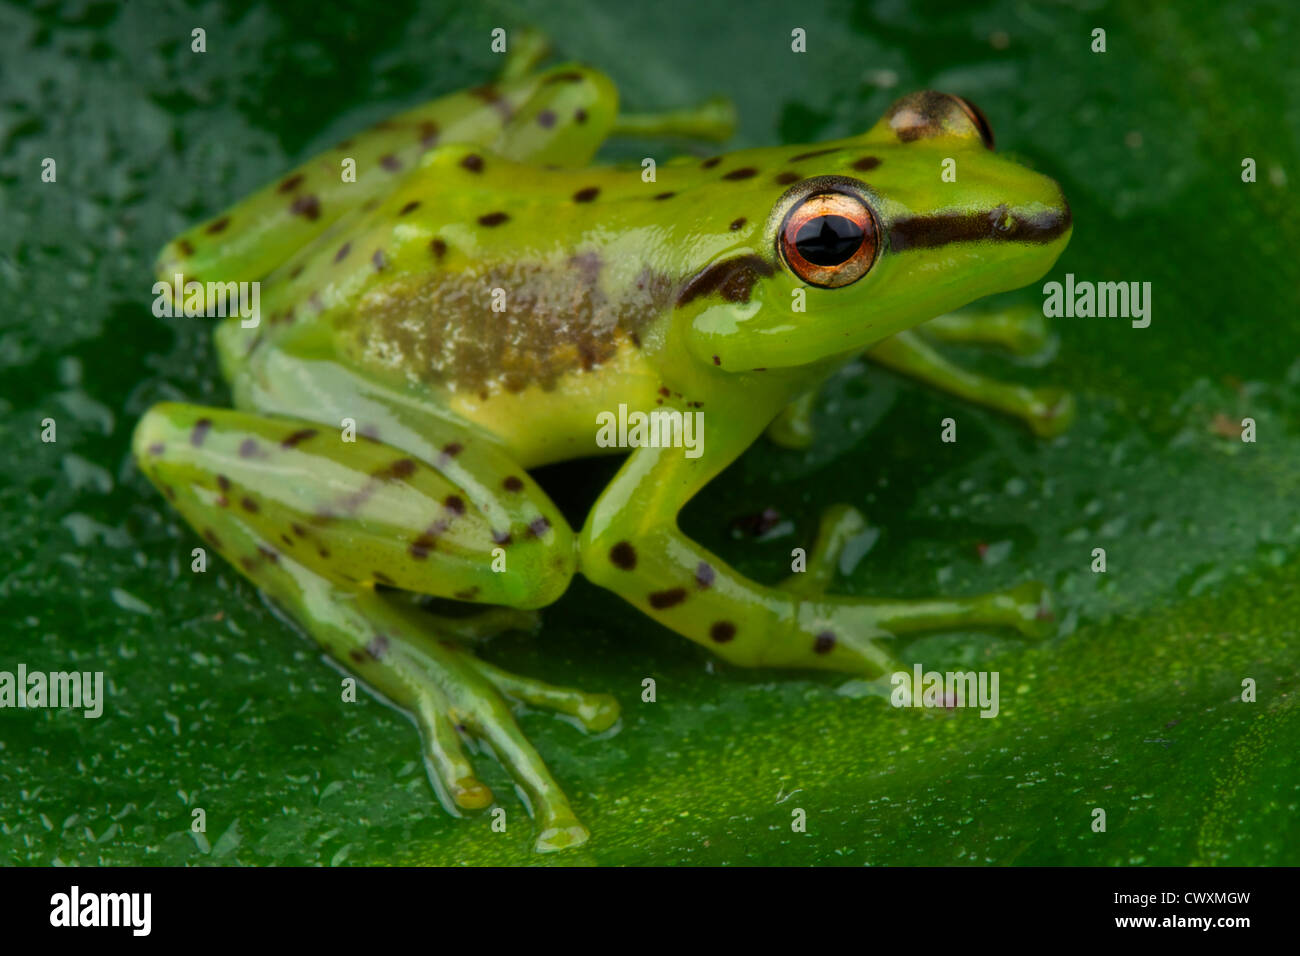 Speckled glass frog / Mantidactylus pulcher - Stock Image